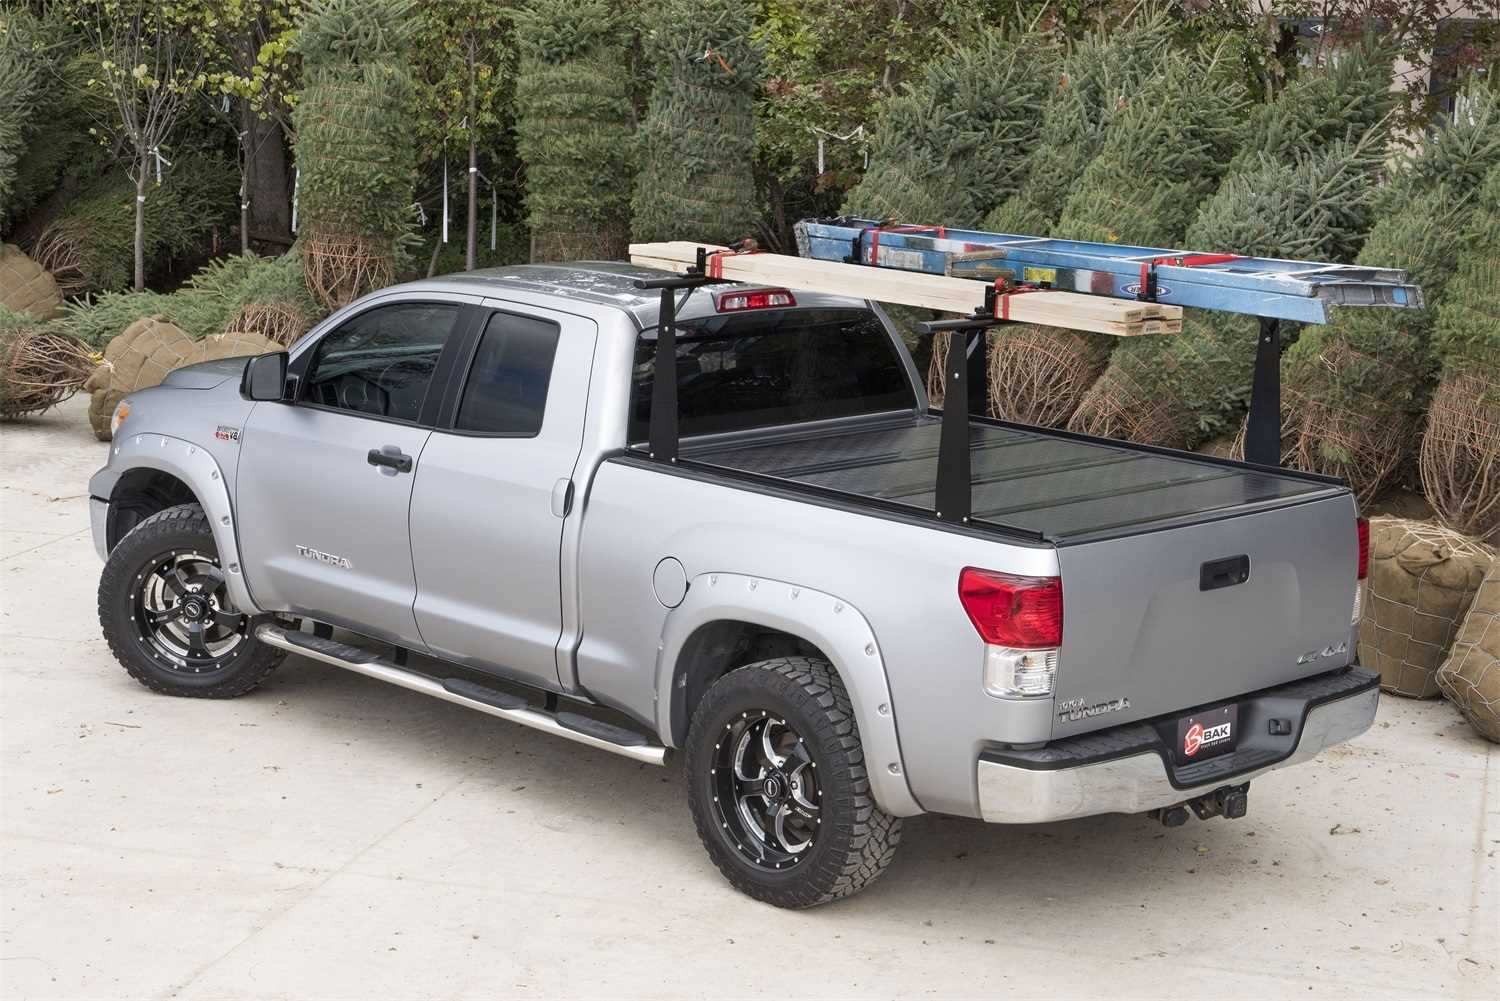 72306BT Bak Industries BAKFlip CS-F1 Hard Folding Truck Bed Cover/Integrated Rack System